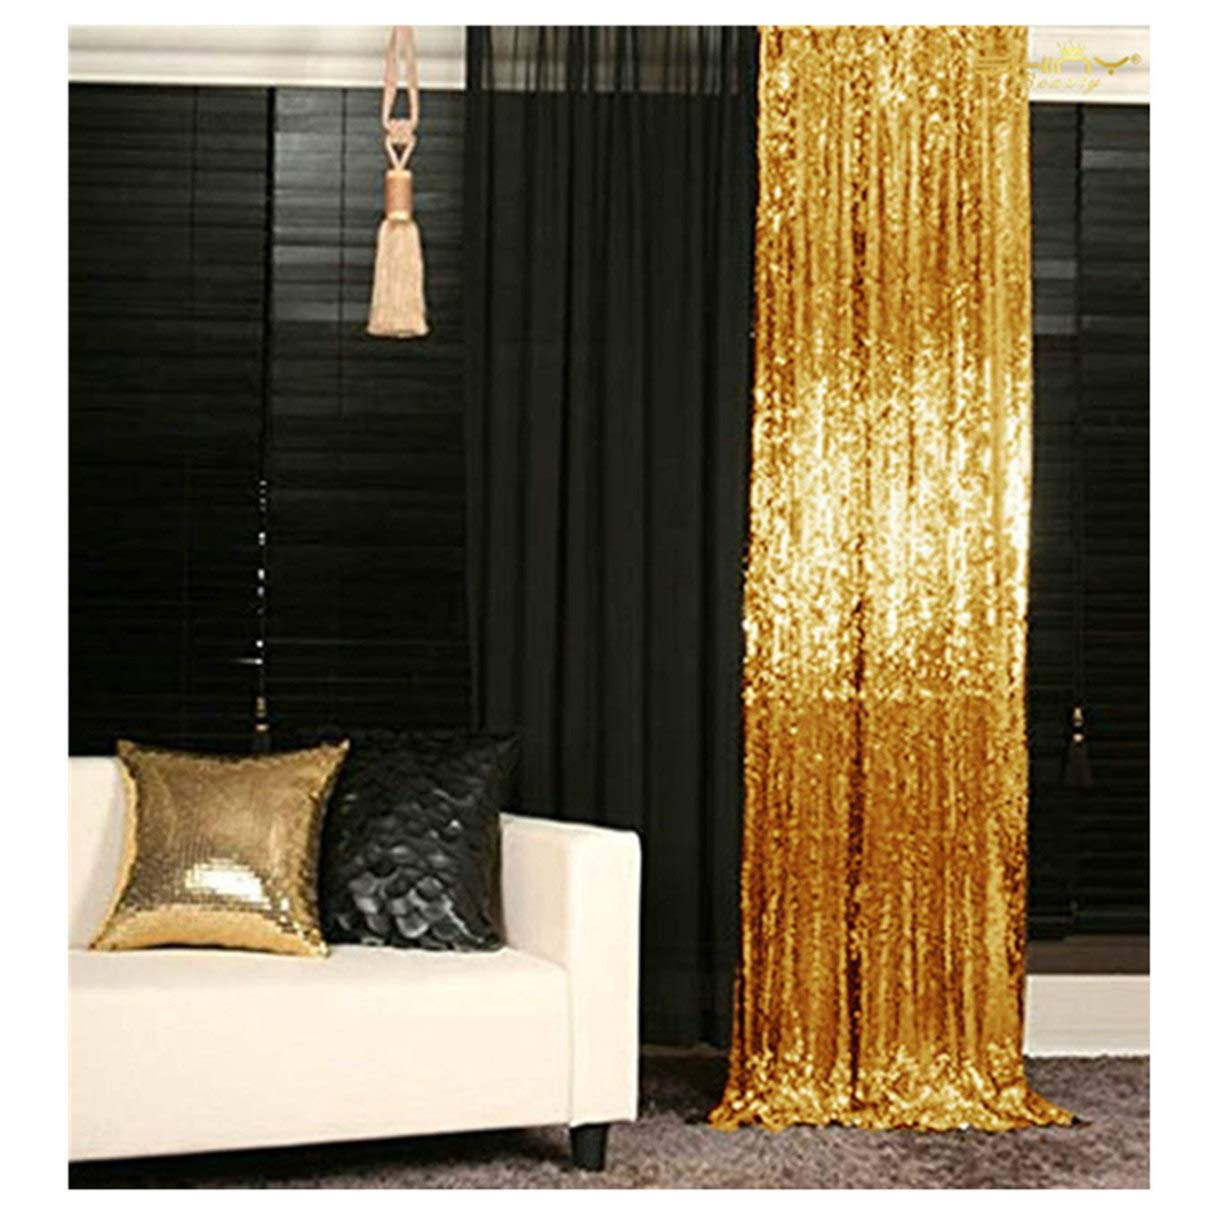 ShiDianYi Gold-SEQUIN BACKDROP-2FTx8FT Sequin Photo Backdrop,Photo Booth Background,Sequence Christmas Backdrop Curtain ON SALE